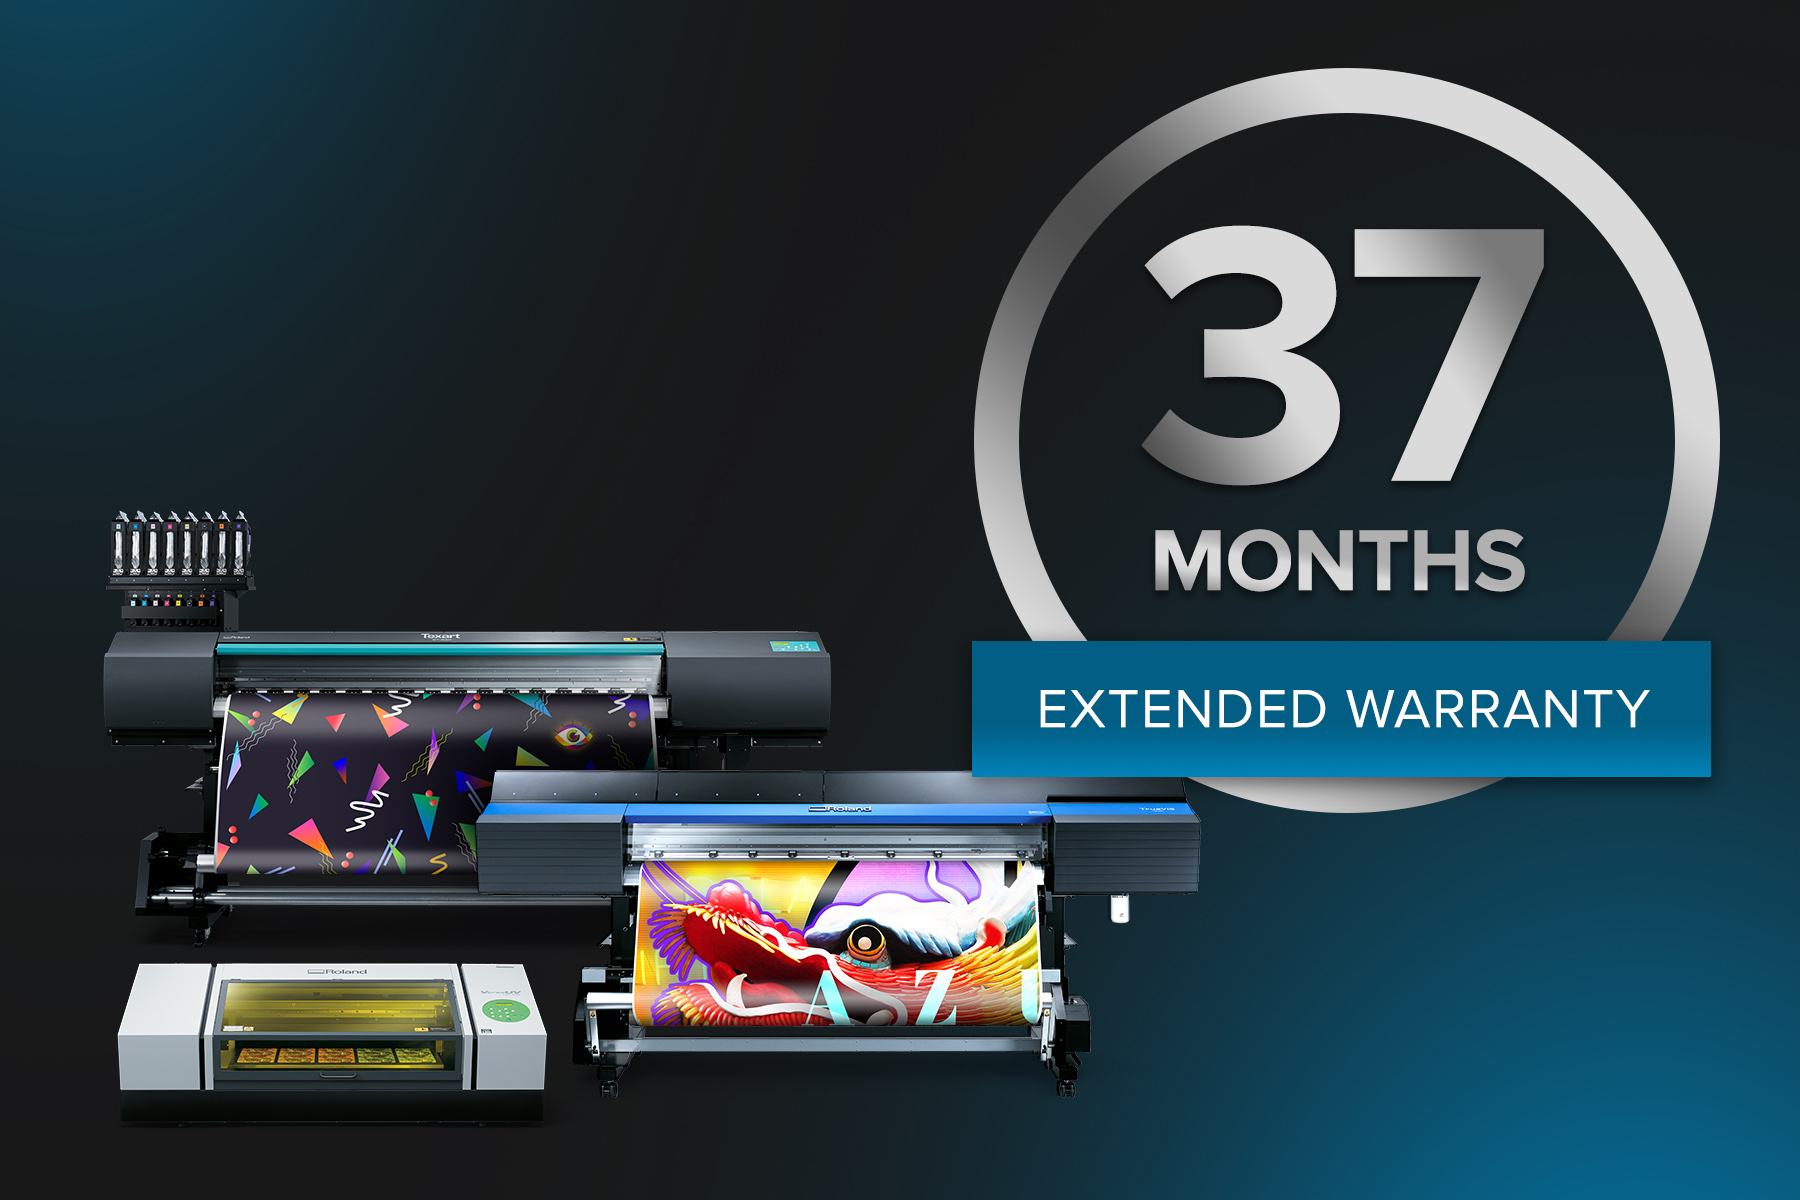 Roland DGA has announced the launch of its new 37-Month Warranty Promo.